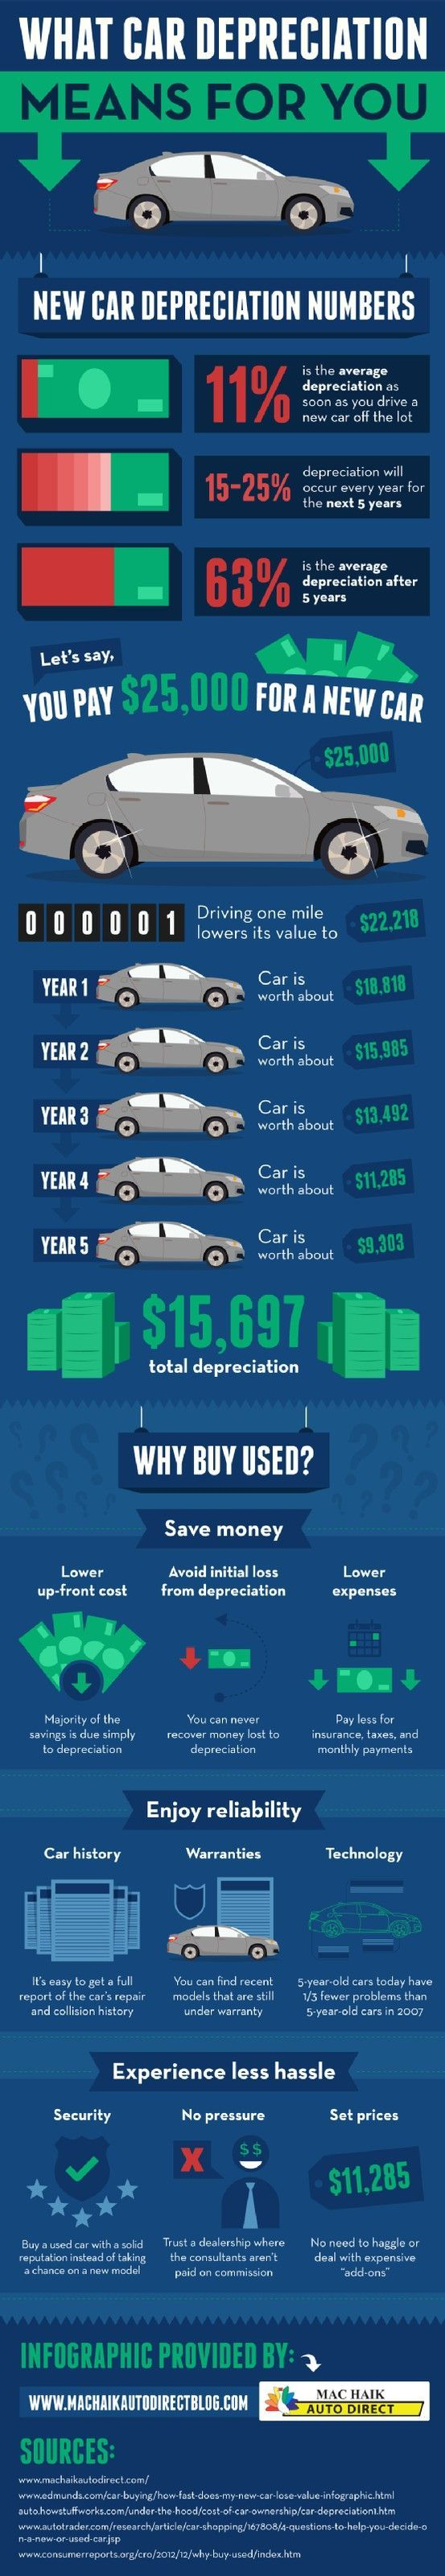 A preowned car has a lower upfront cost than a new car